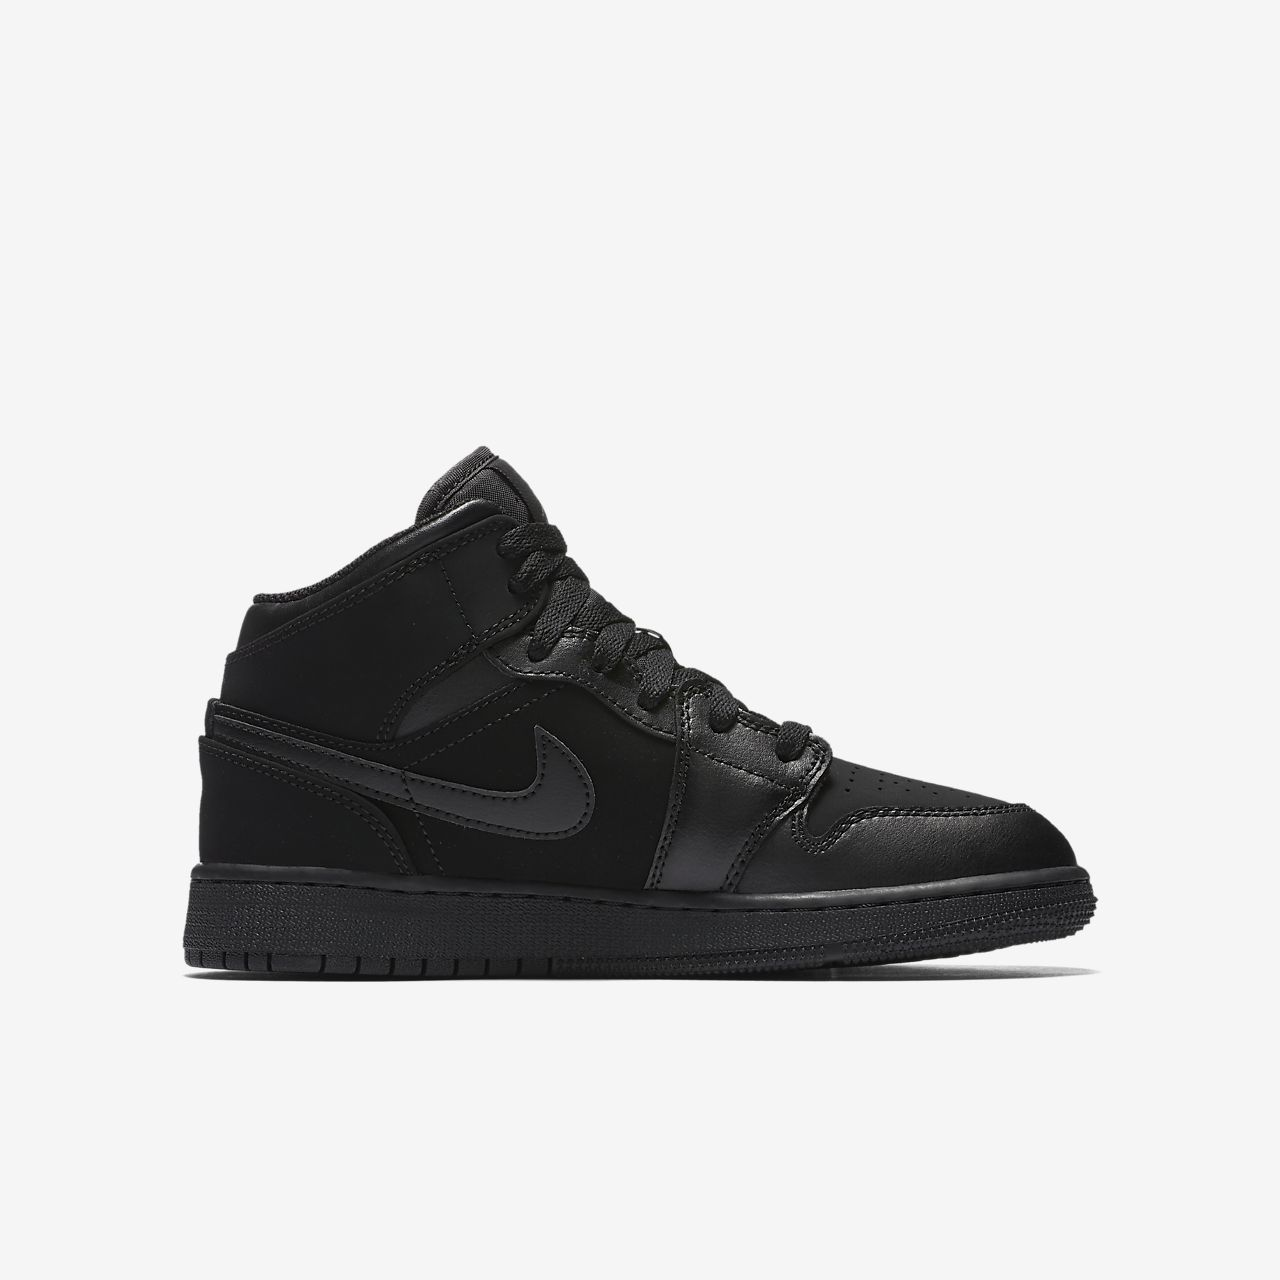 nike air jordan 1 mid nz